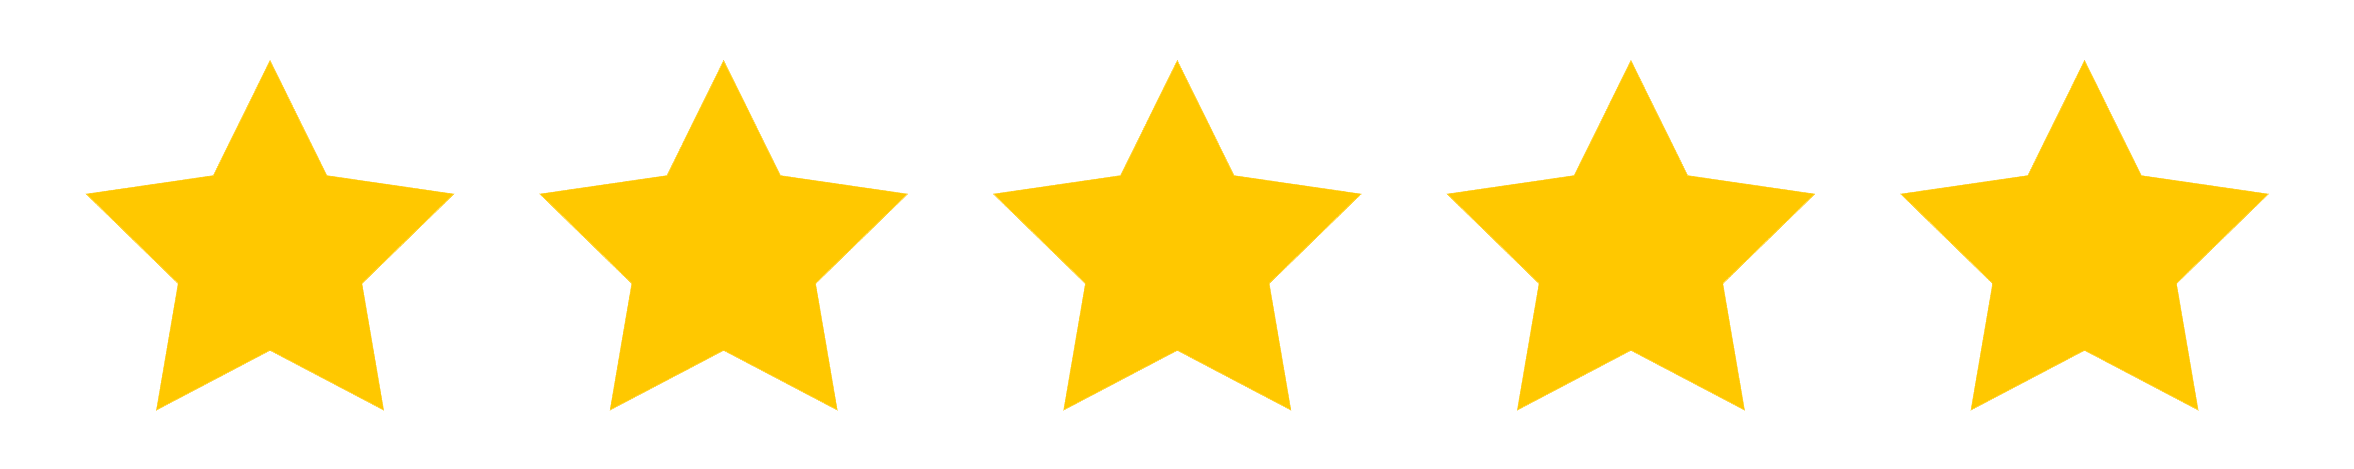 Reviews star rating from Diane C. for A-1 Self Storage in El Monte, California